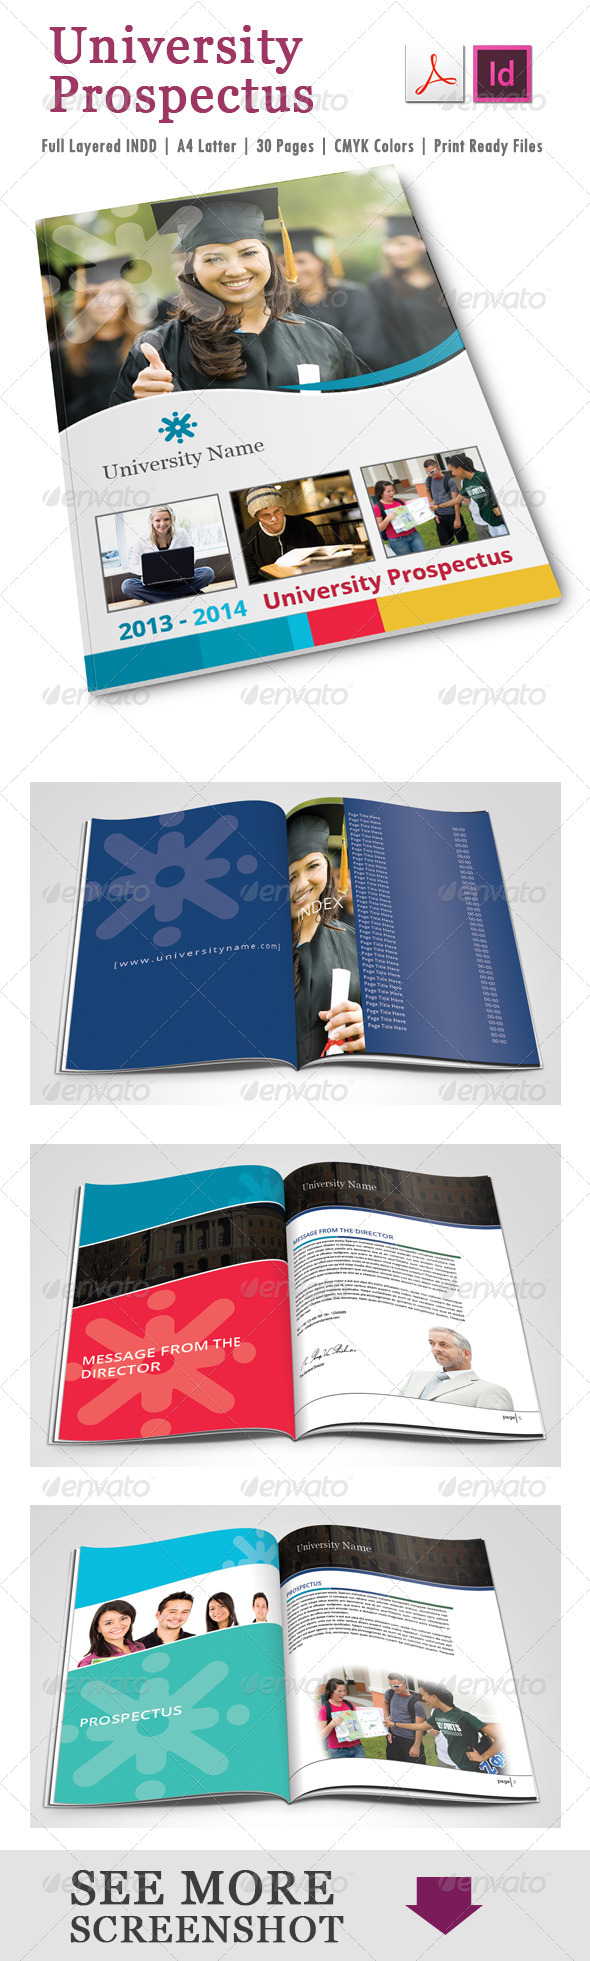 University Prospectus Template - Brochures Print Templates